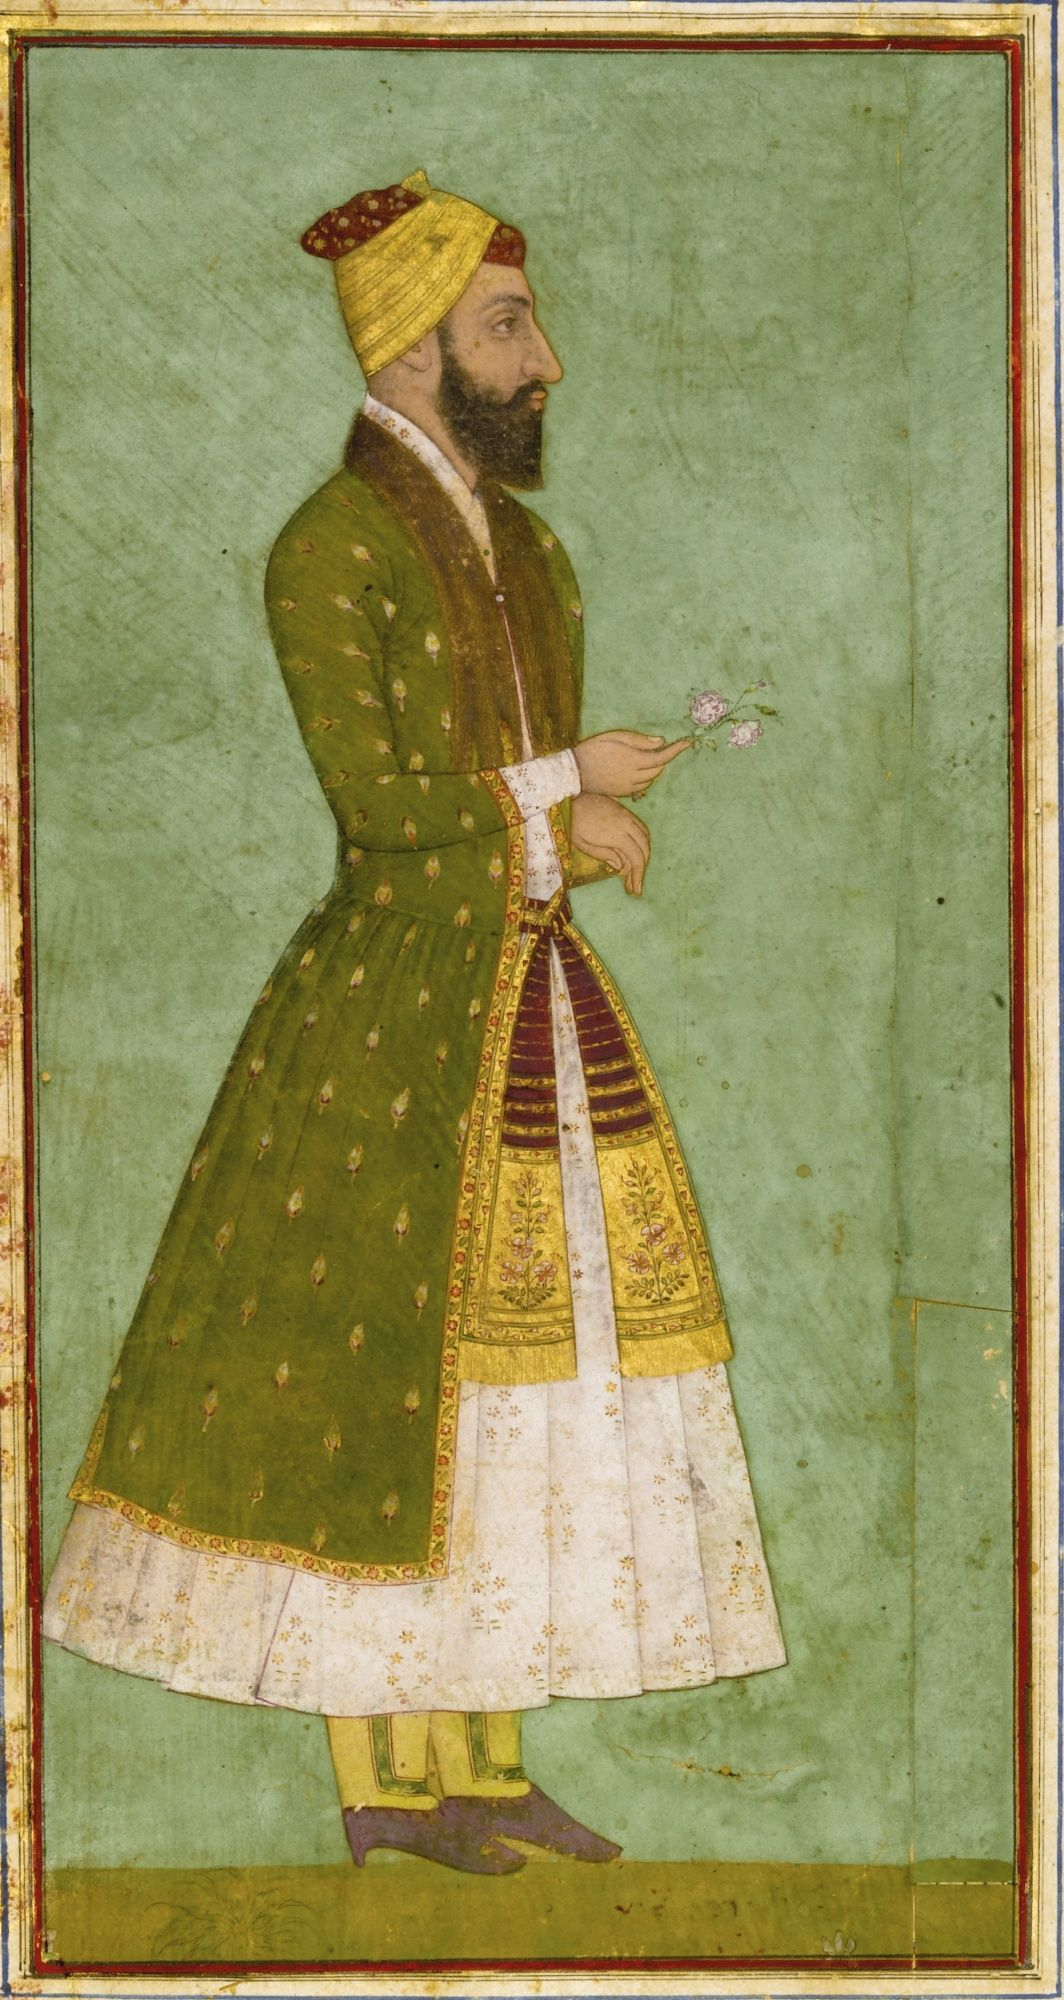 Portrait of a Nobleman, gouache heightened with gold on paper, Mughal Period, C. 1670, India. The gouache depicting a bearded figure in green and white robes with a floral patka, holding a flower in his right hand, red and gold turban, laid down on an album page with leafy floral borders with applied floral cartouches in different colours, the reverse with a text block with 14 lines of elegant nasta'liq script in black ink, with a heading panel left blank but with floral decoration.